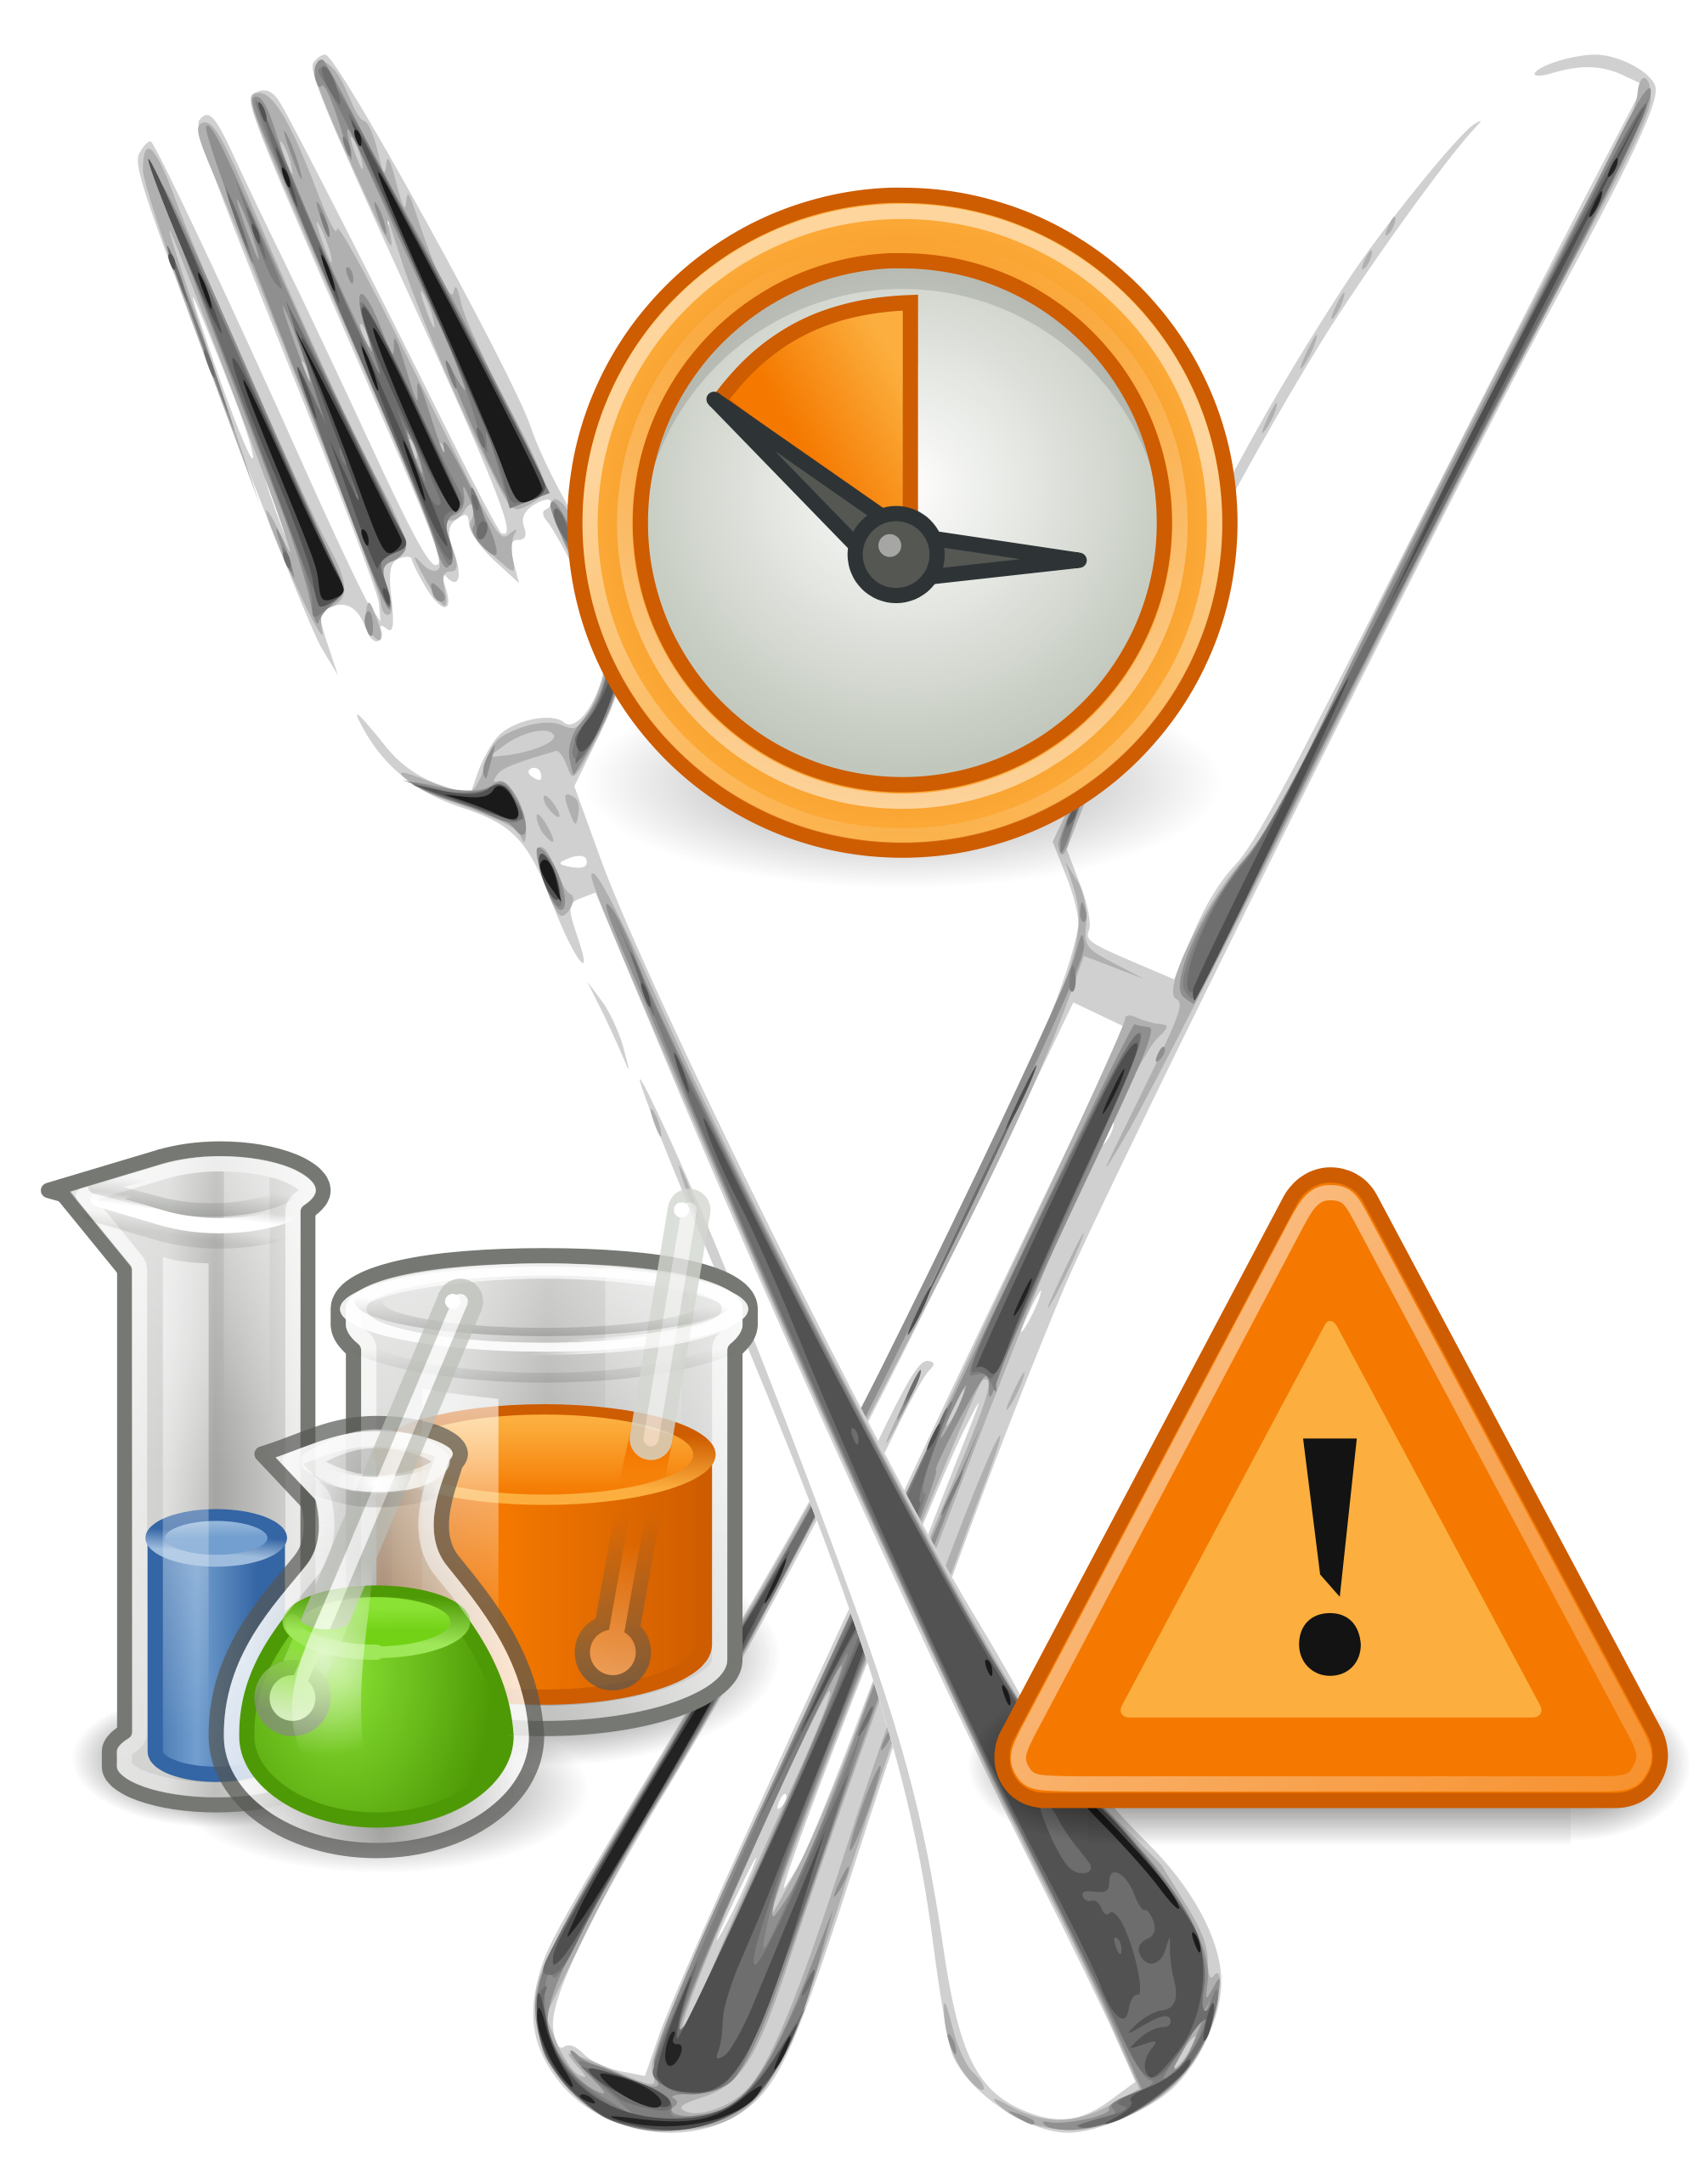 Poison clipart poison control. Collection of safety in